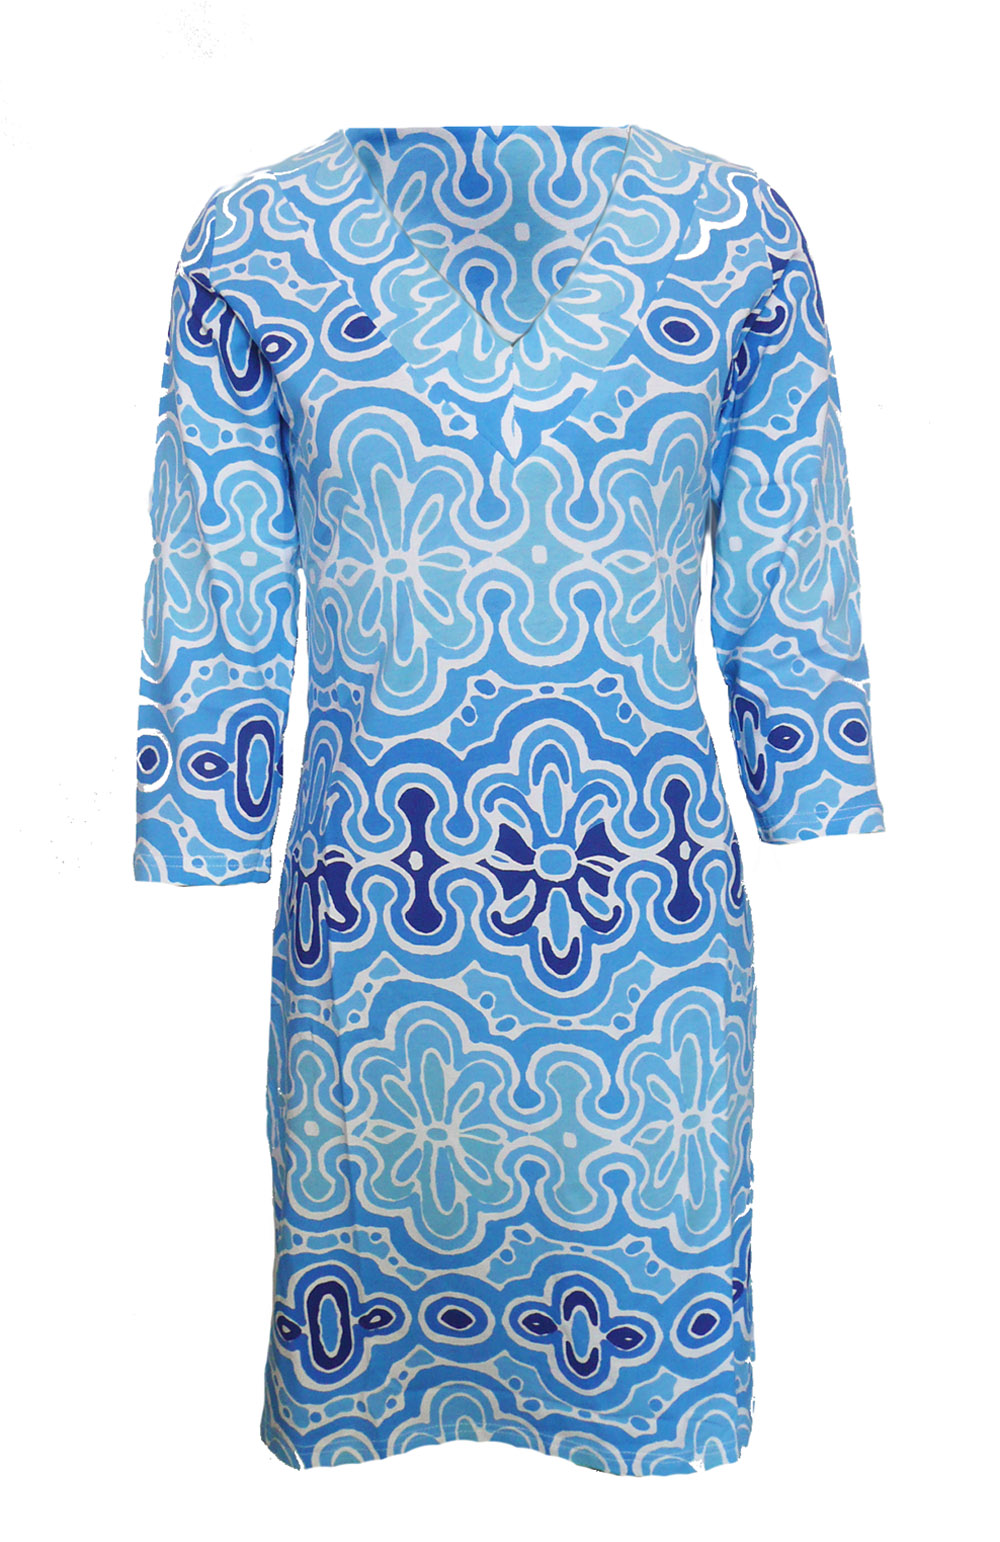 dress cotton prnt blue.jpg